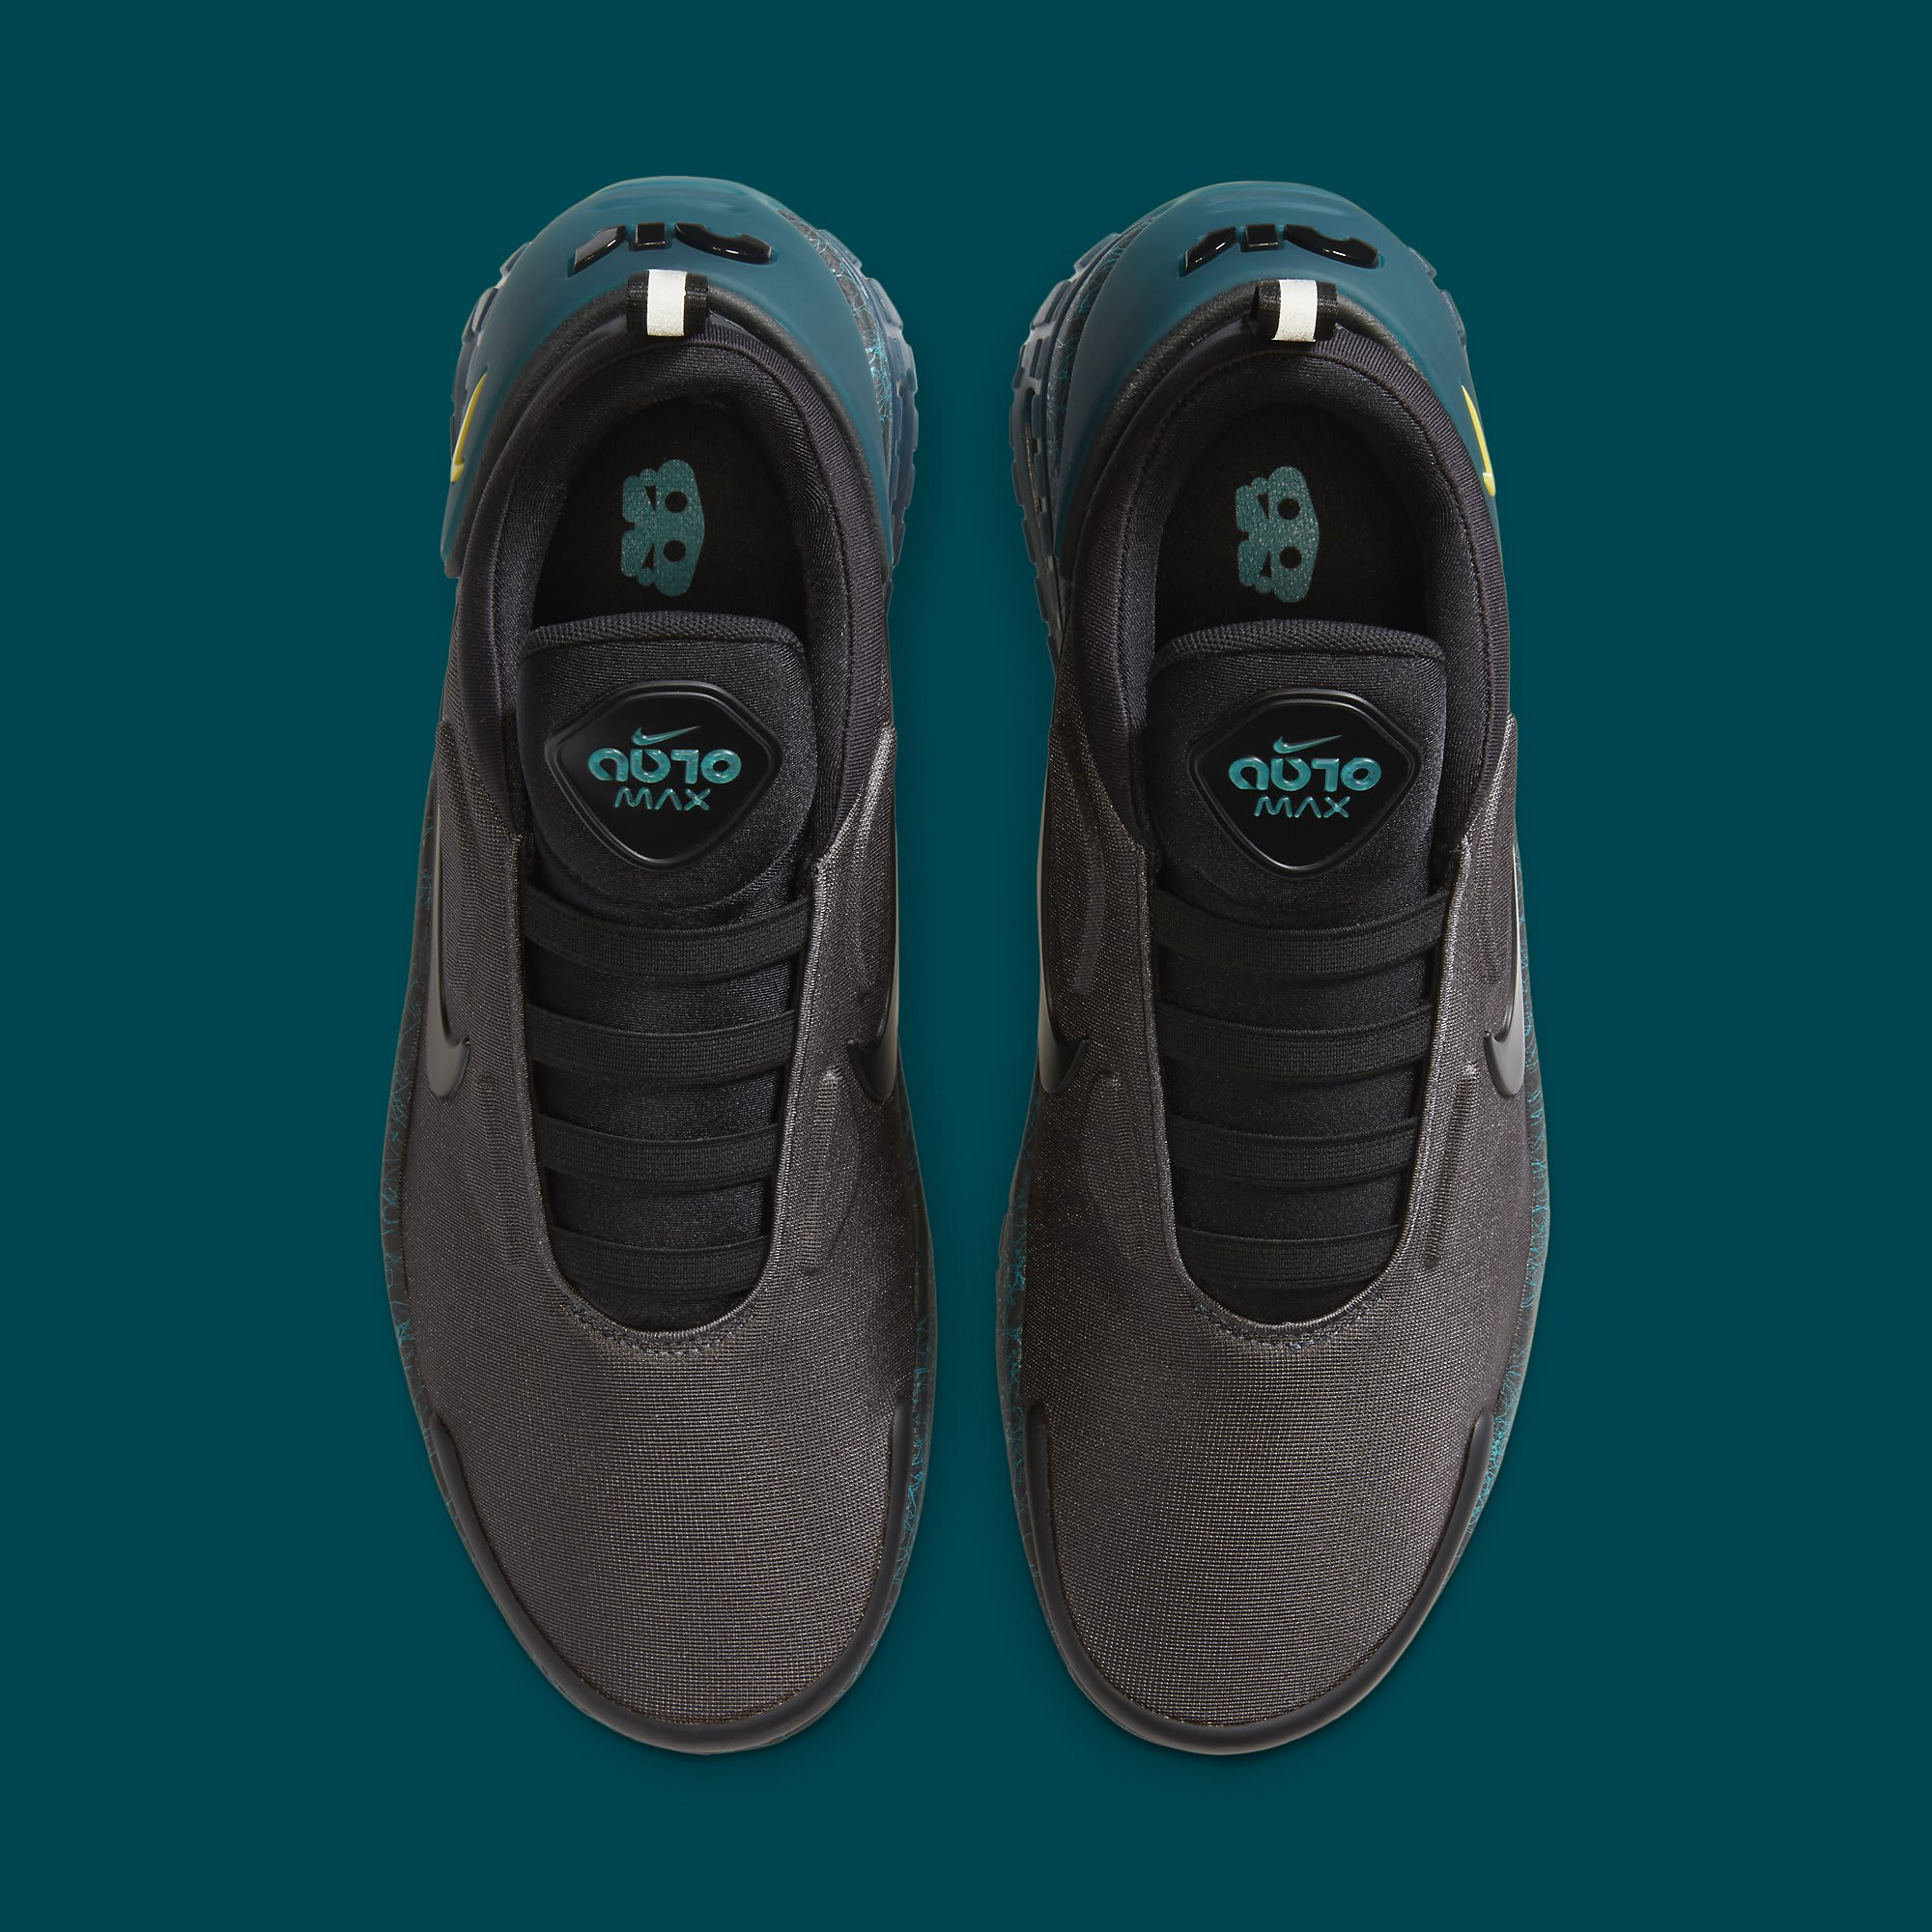 Nike Adapt Auto Max Anthracite Green Release Date CI5018-001 Top